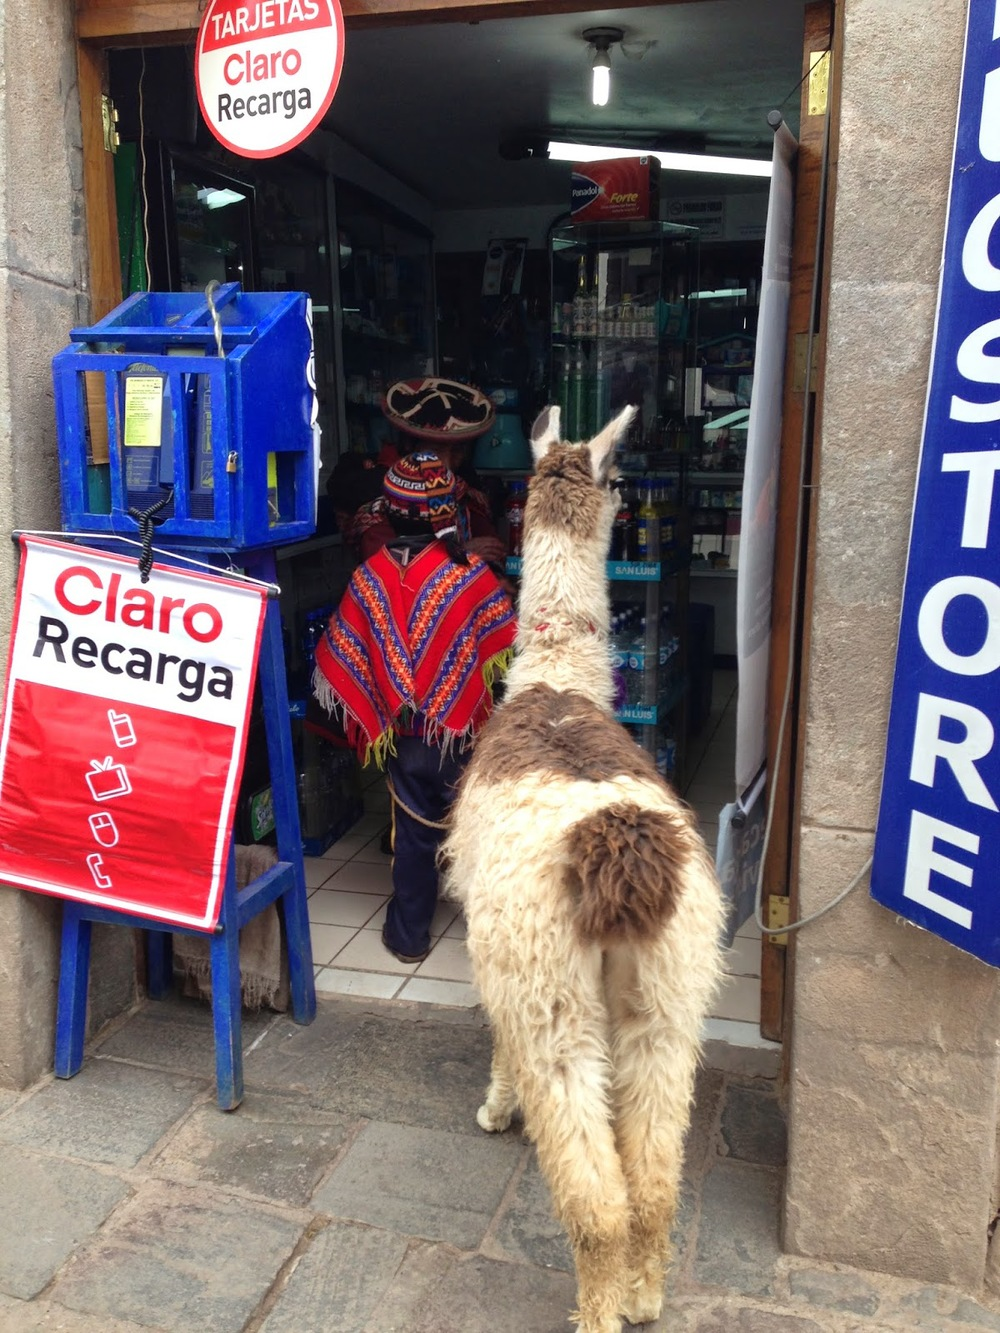 It's normal to take your llama to the store, right?